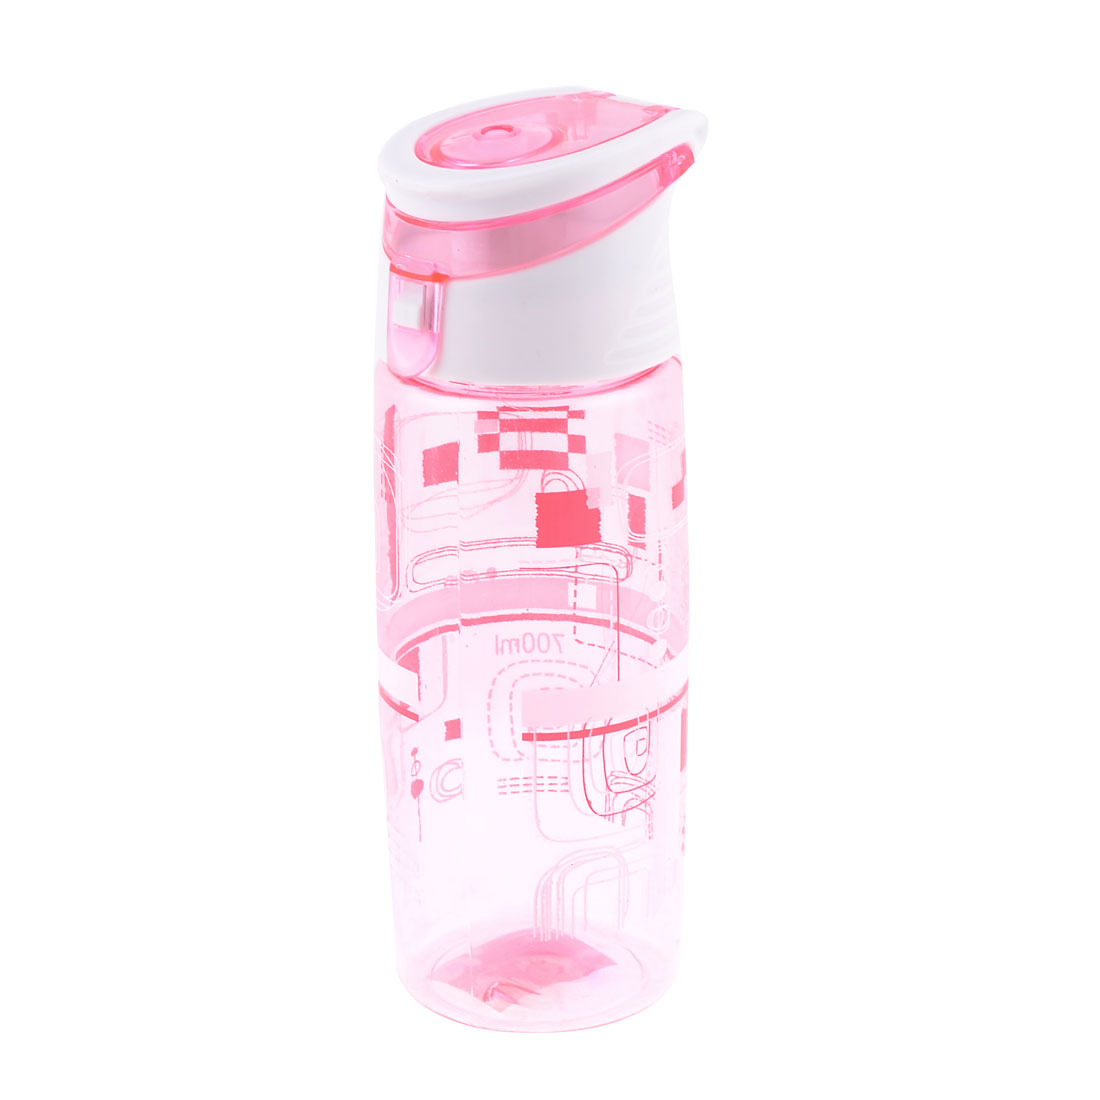 700ml Plastic Clear Pink White Strainer Design Sports Drinking Water Bottle